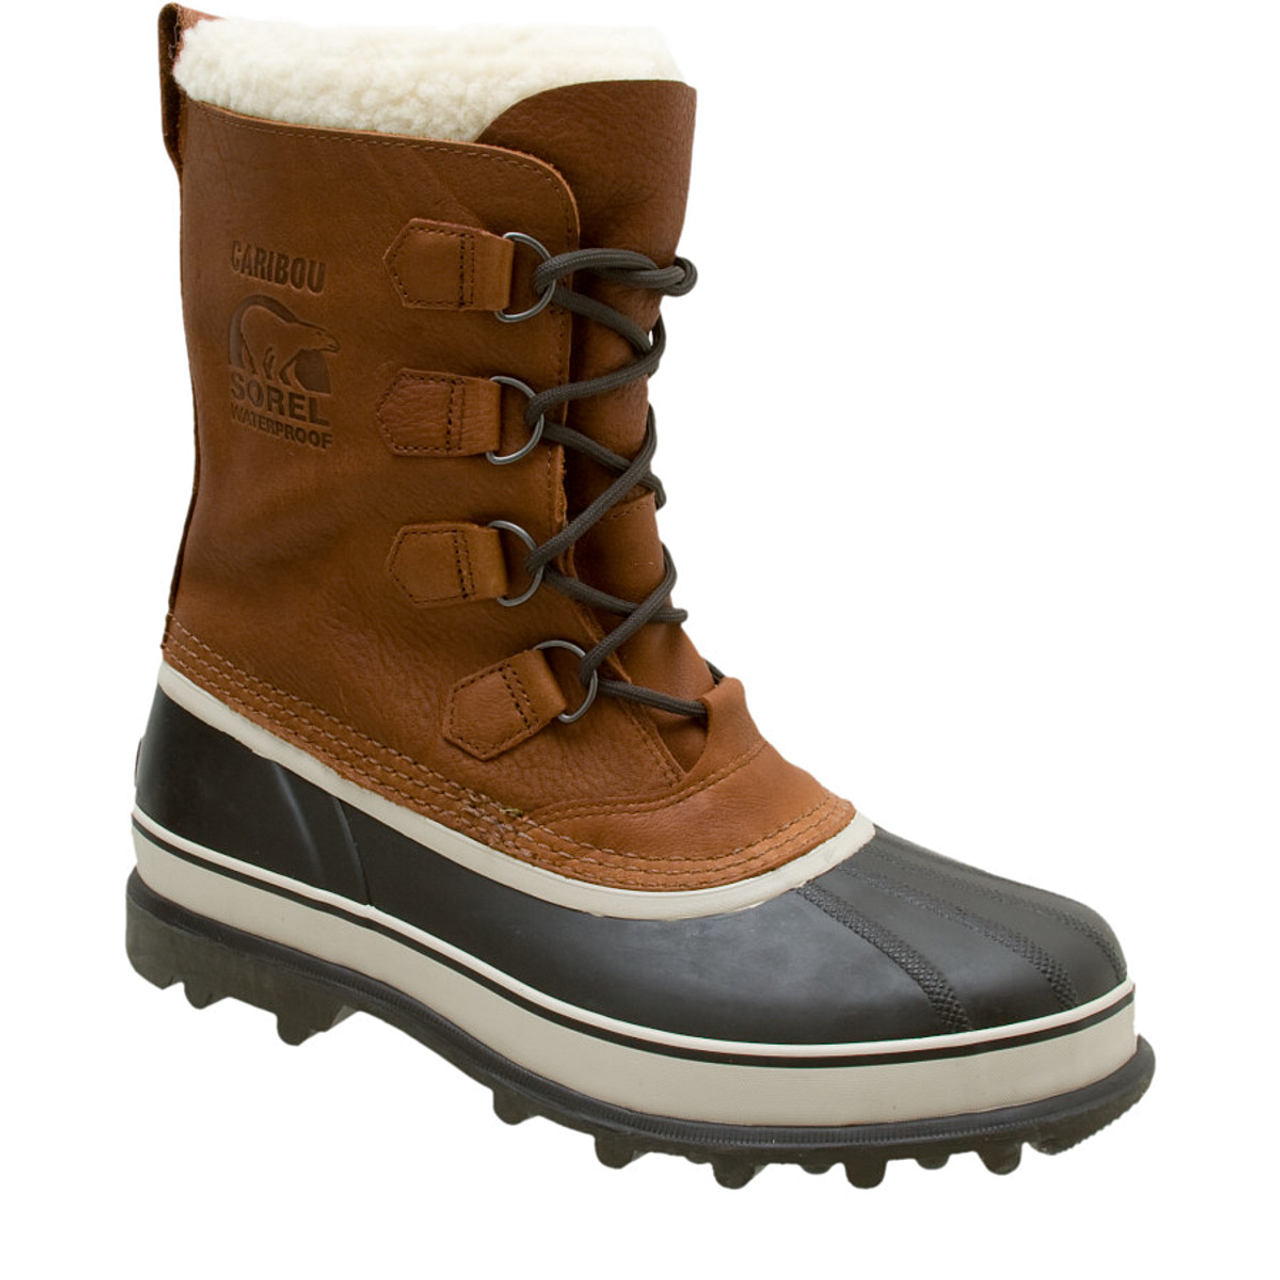 Sorel Men s Caribou Wool Boot - Gear West Ski and Run b457fafcbf76